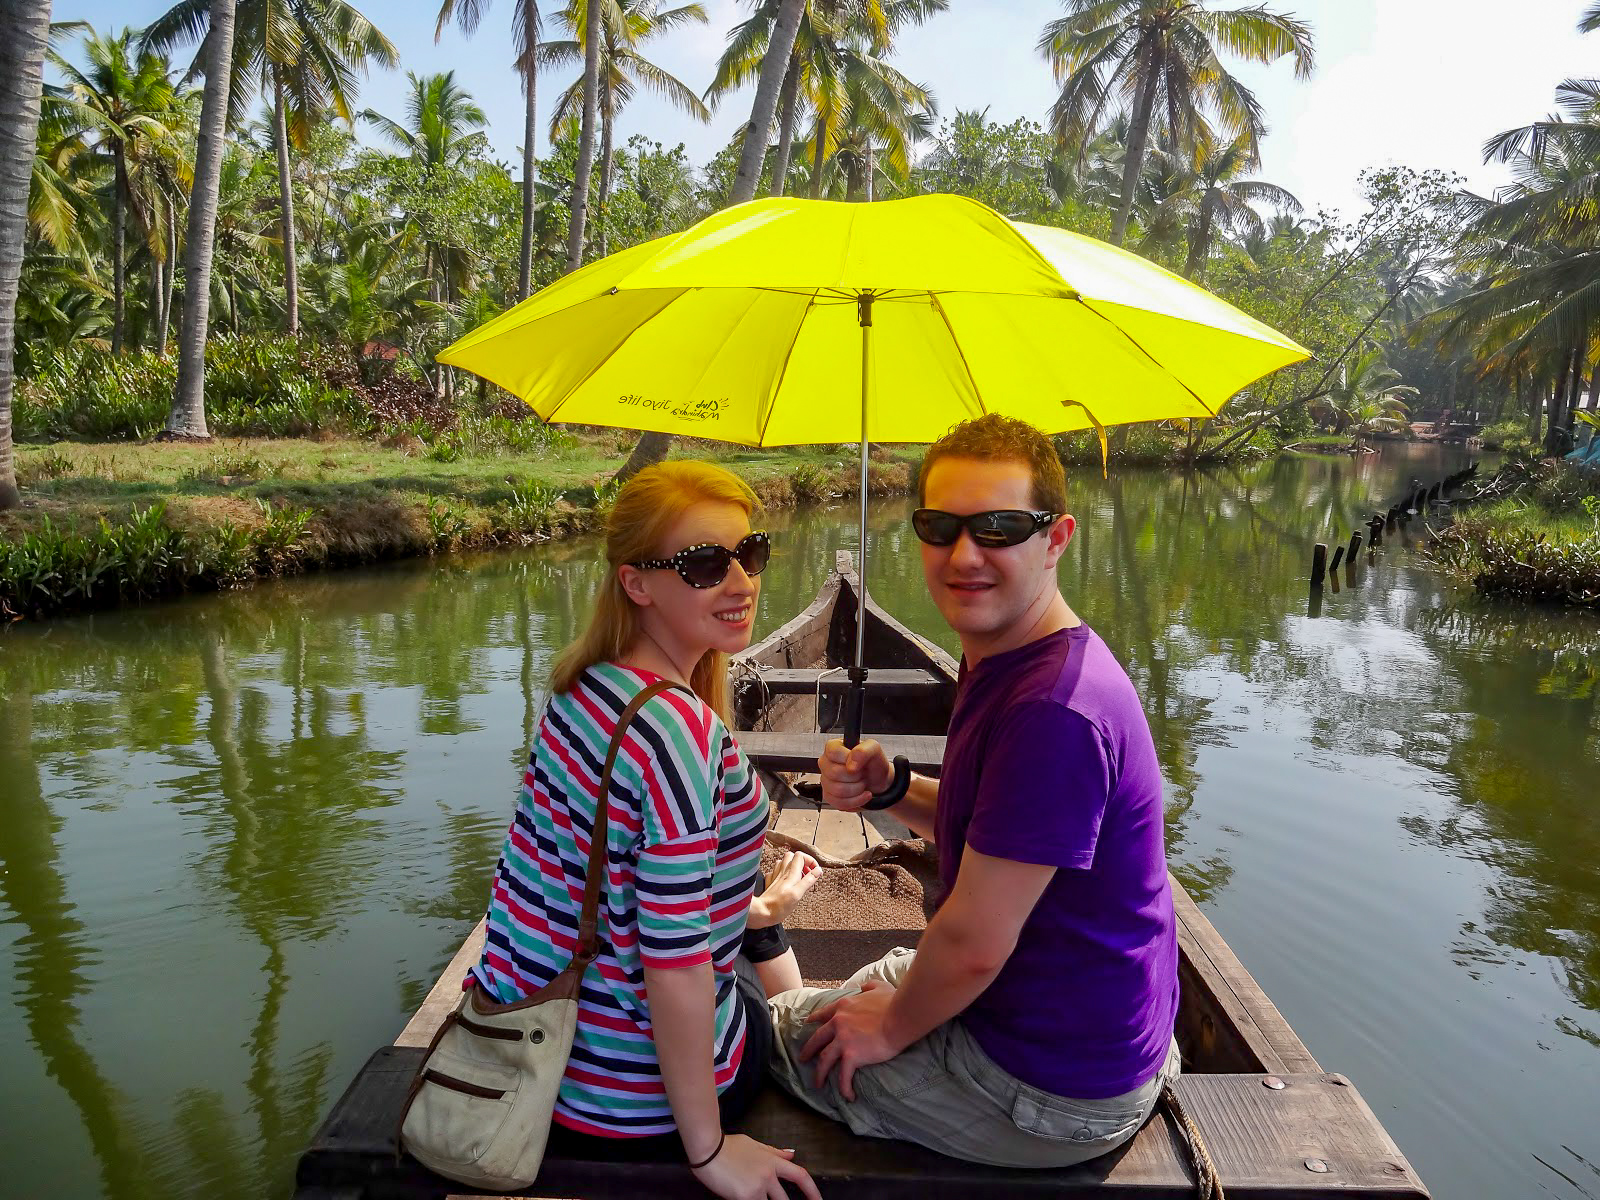 Rosie and Karl wearing sunglasses, under a yellow umbrella sitting on a wooden boat in the Kappil Backwaters, Kerala, India